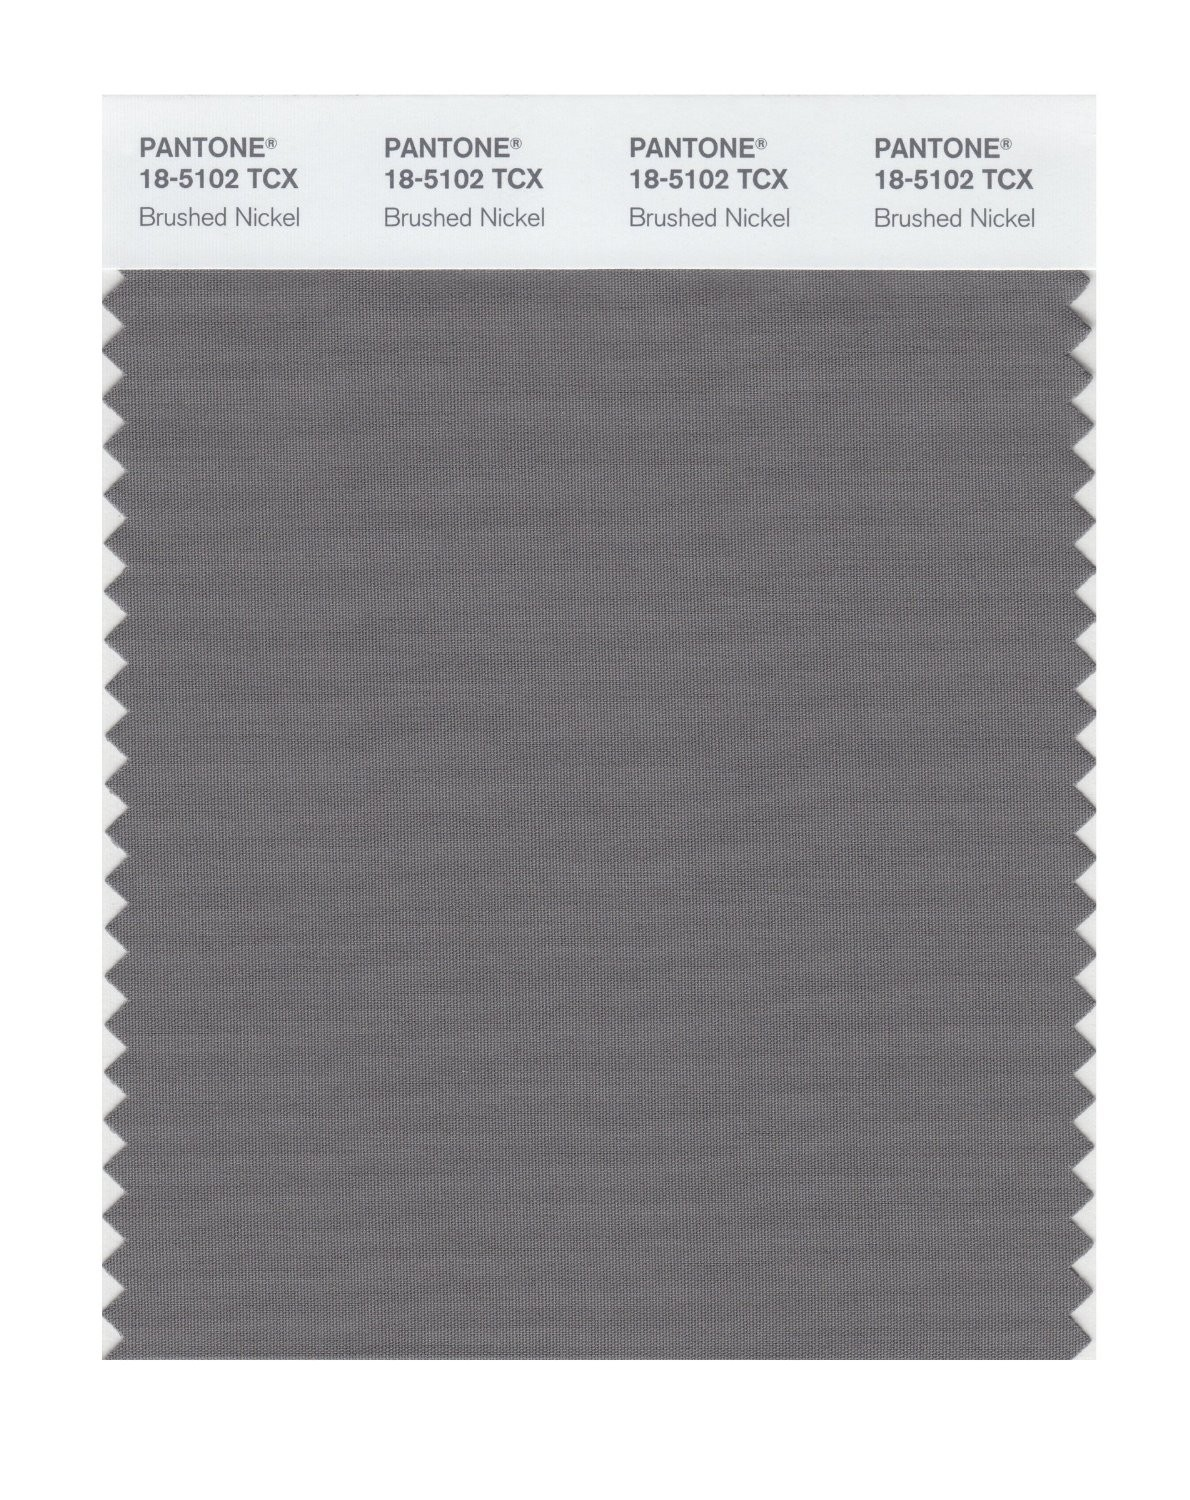 Pantone 18-5102 TCX Swatch Card Brushed Nickel